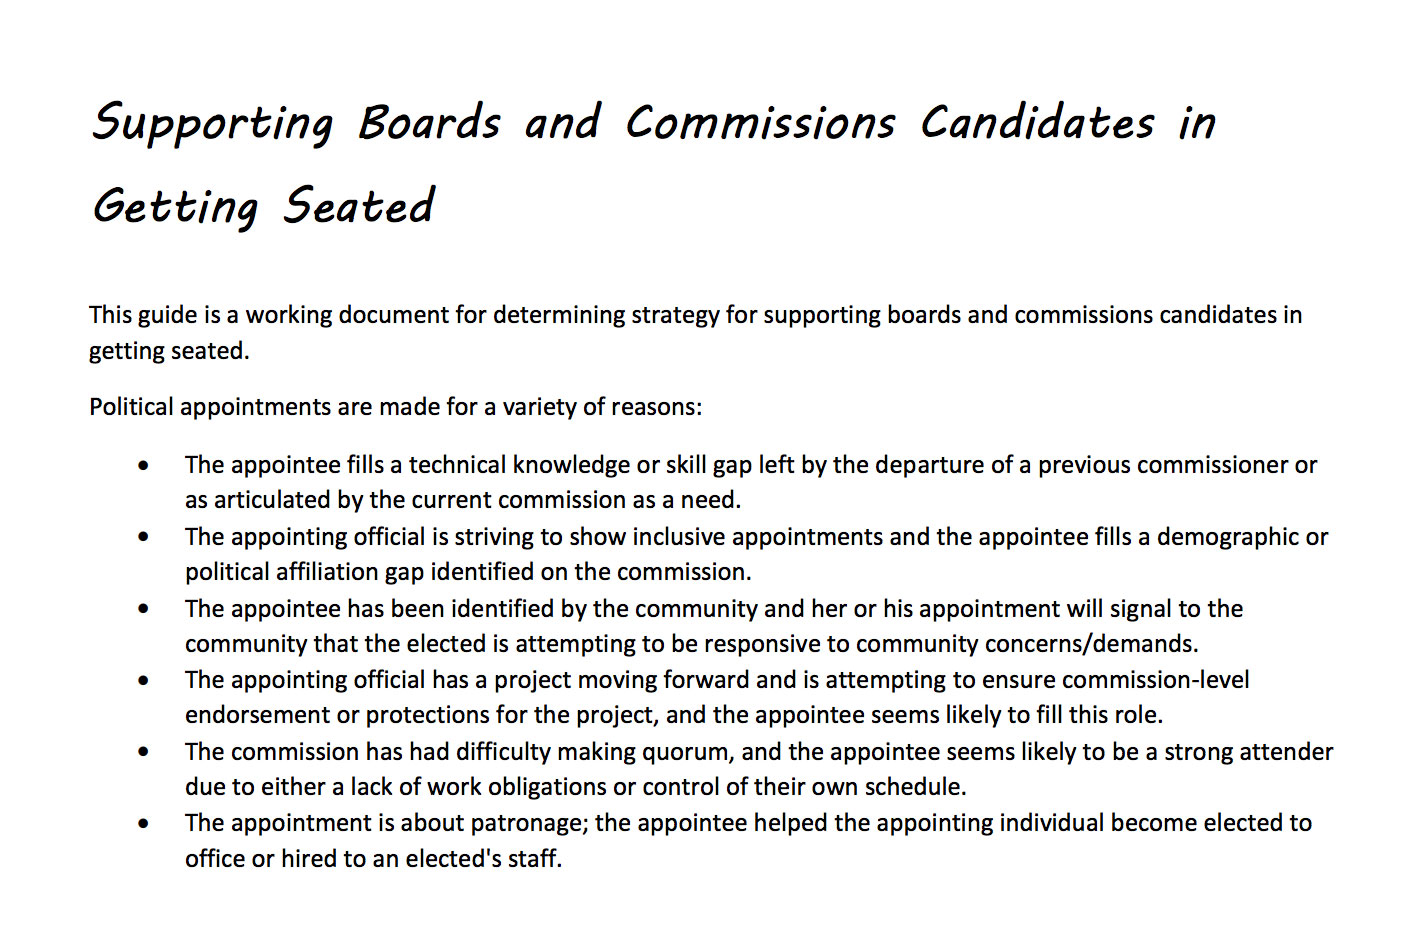 Supporting Boards and Commissions in Getting Seated - I often say that the training component of building a public commissions training program is just one small sliver of a very large pie. A much bigger piece of that pie is getting your folks seated. In this guide, I gather some best practices for supporting your participants as they make their applications to public commissions service.